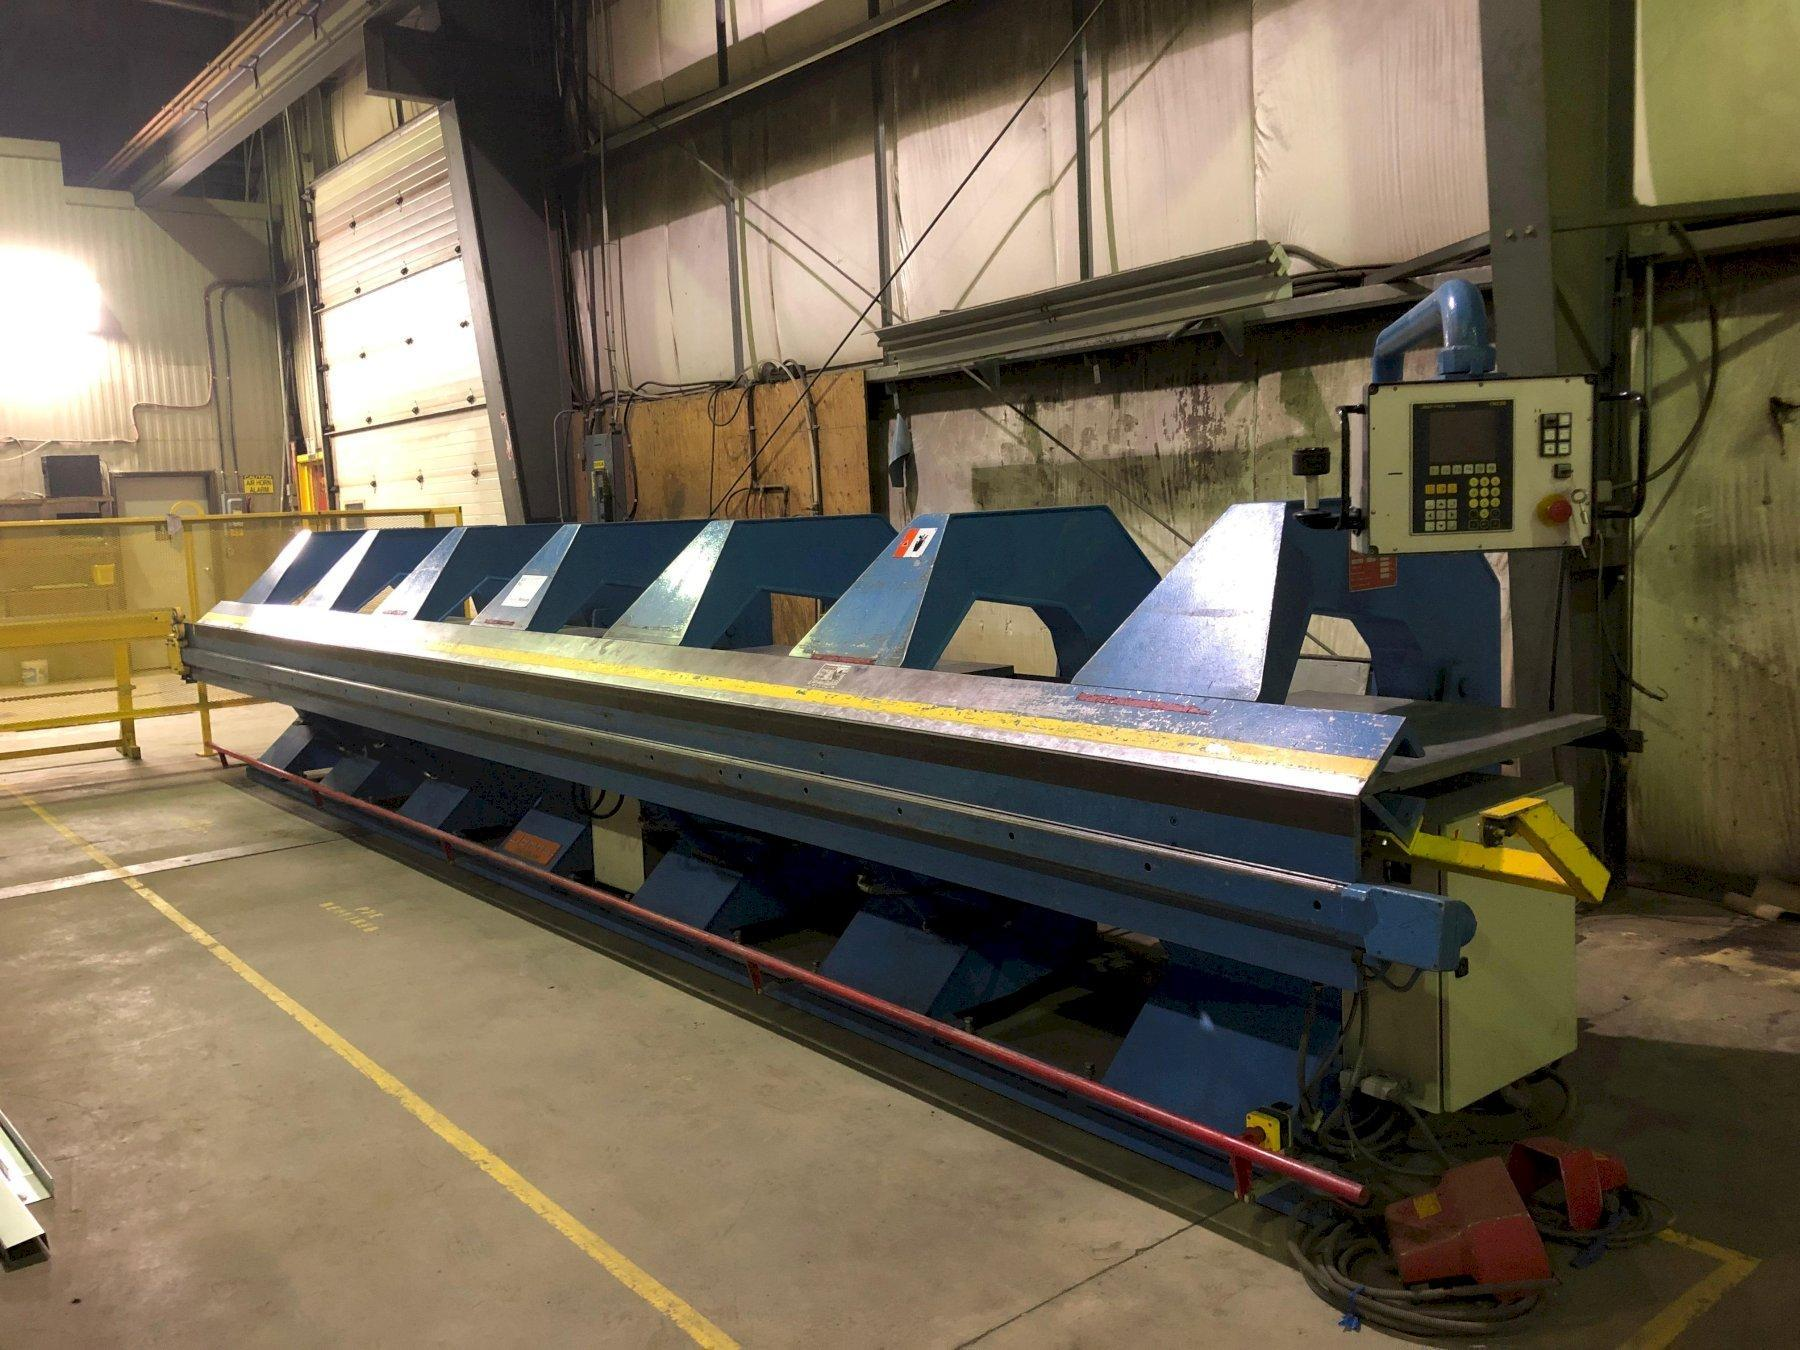 26' X 18 GAUGE JORNS AF CNC SHEET METAL FOLDER: STOCK#2166